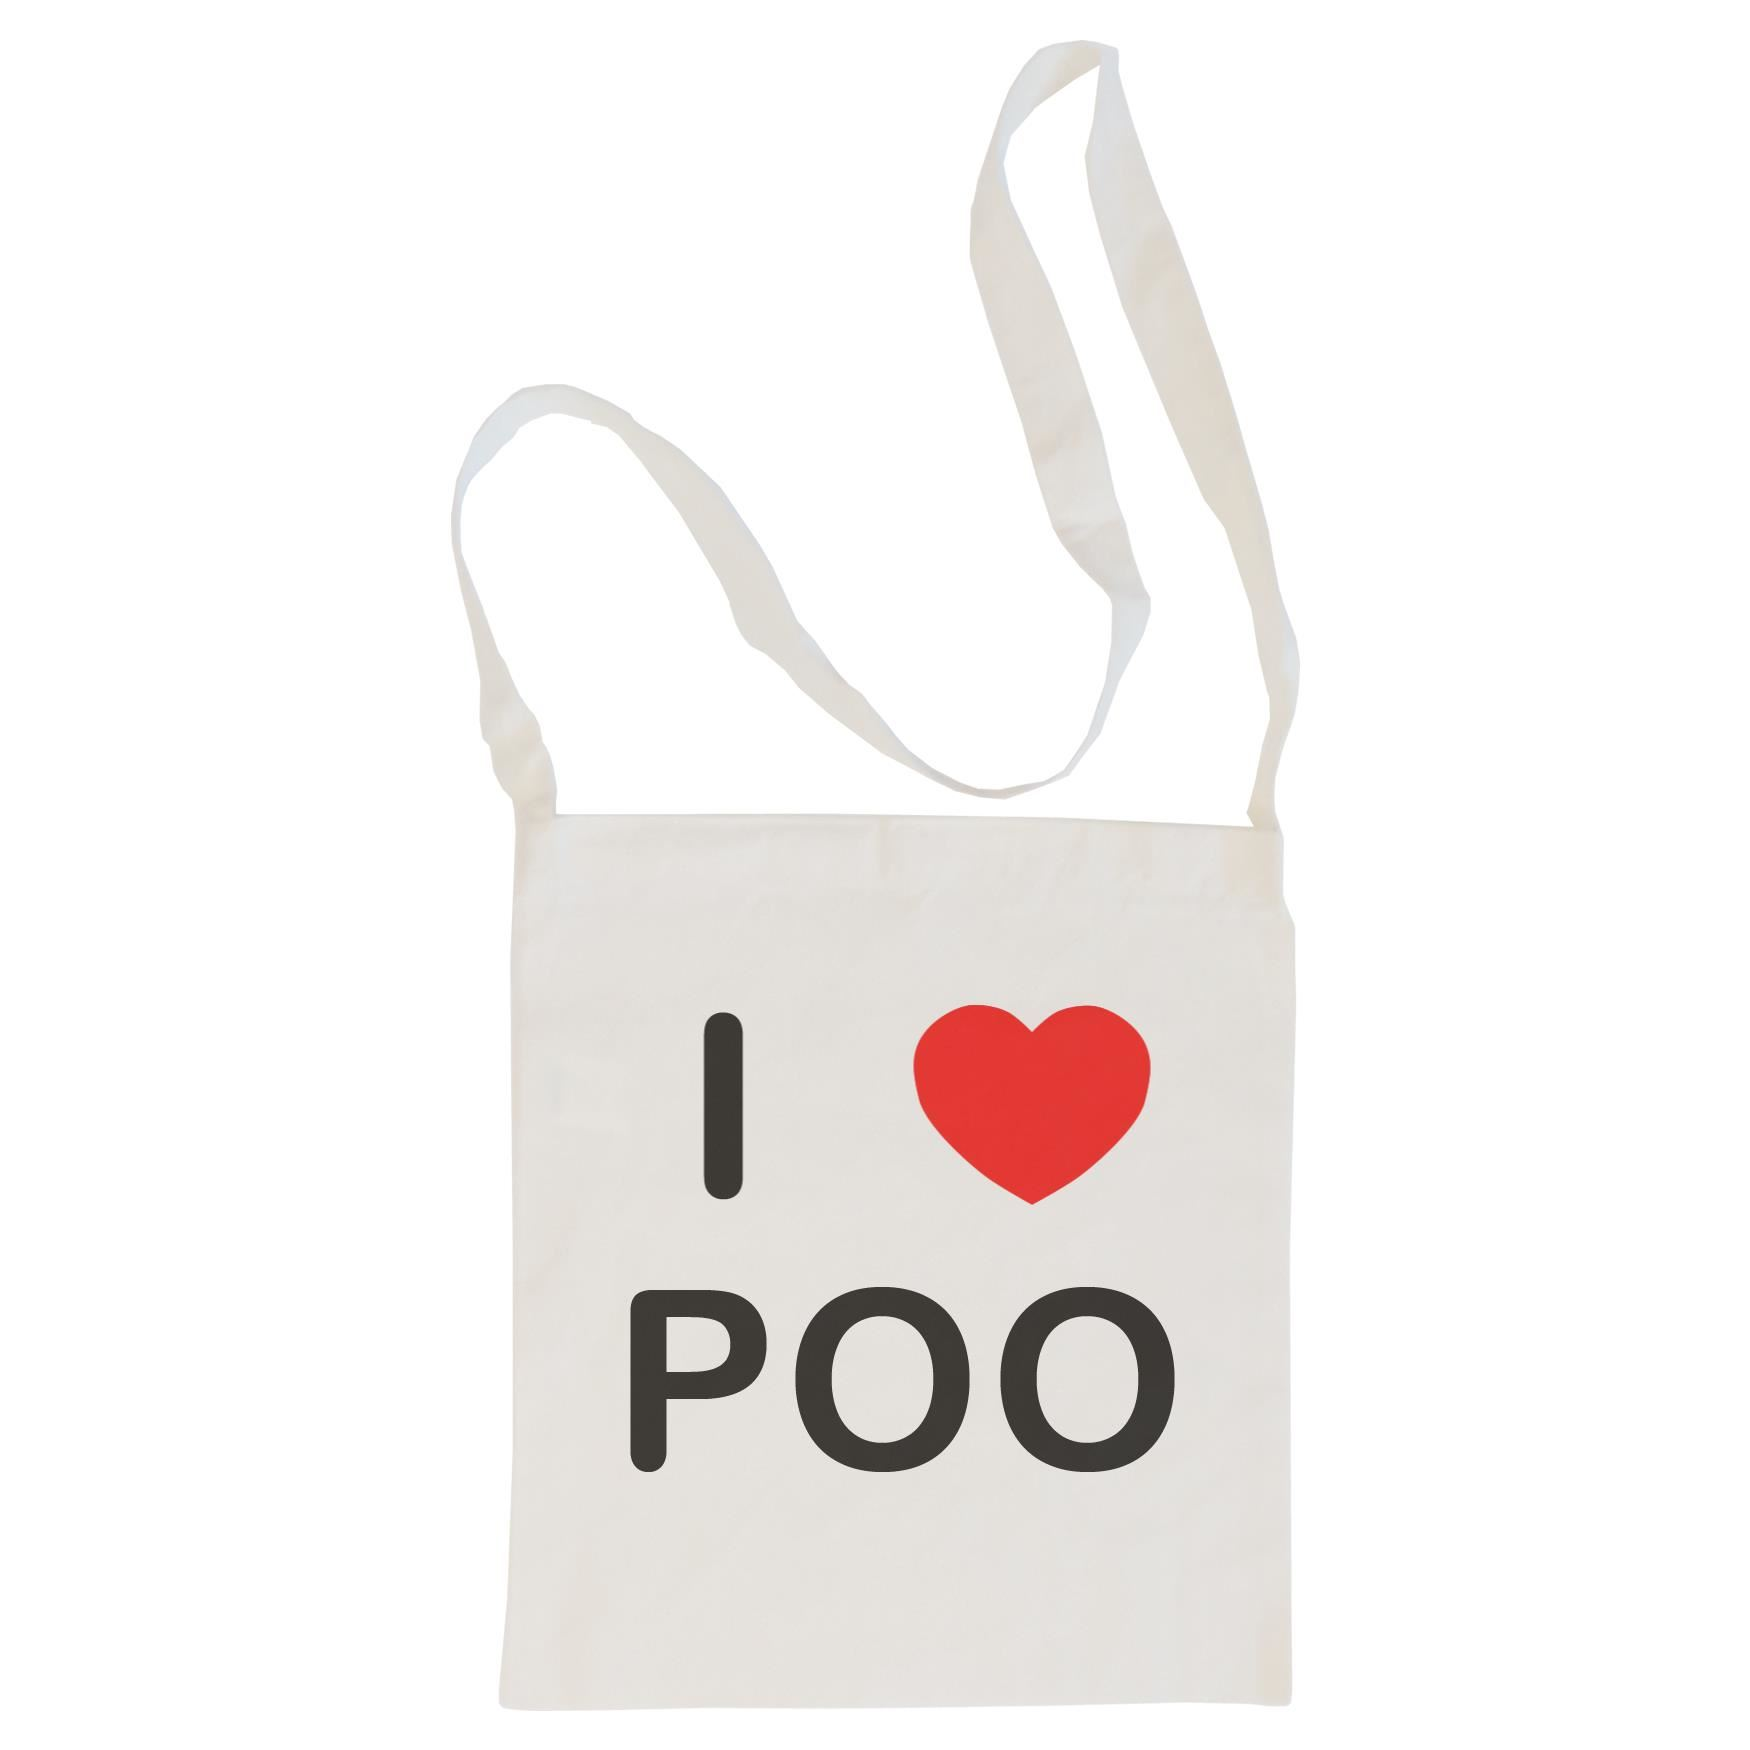 I Love Poo - Cotton Bag | Size choice Tote, Shopper or Sling